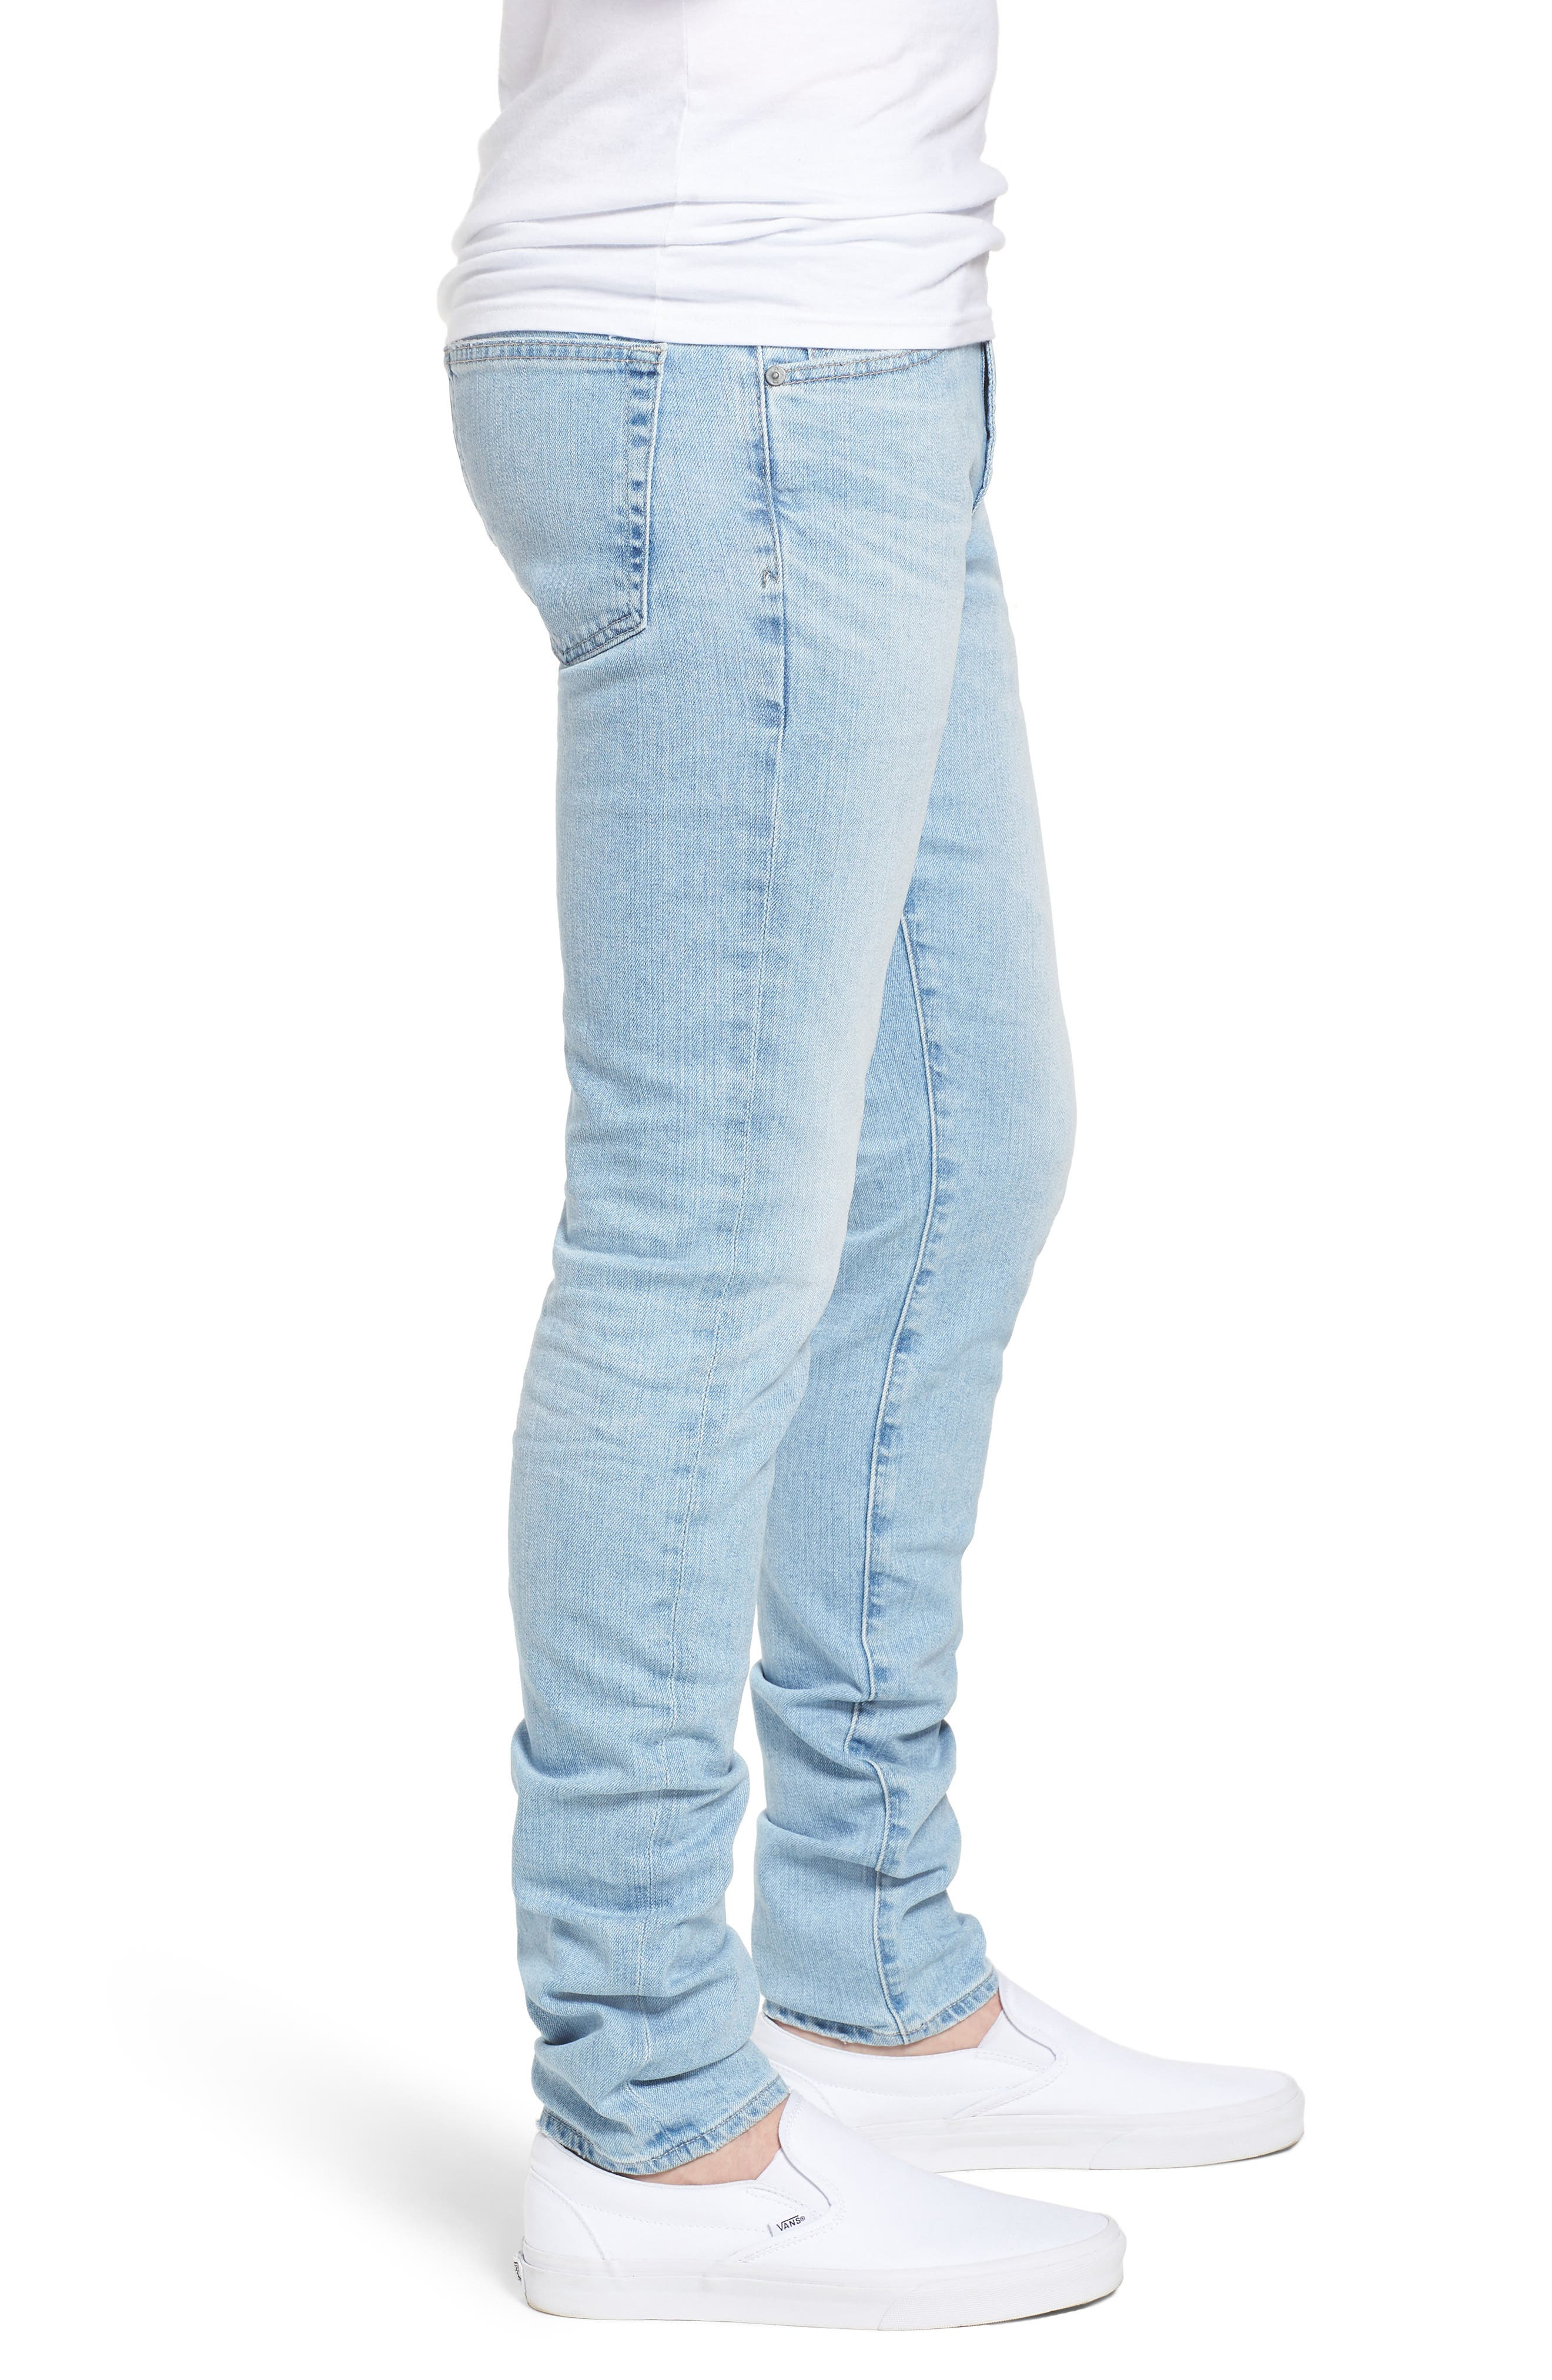 Stockton Skinny Fit Jeans,                             Alternate thumbnail 3, color,                             21 Years Solstice